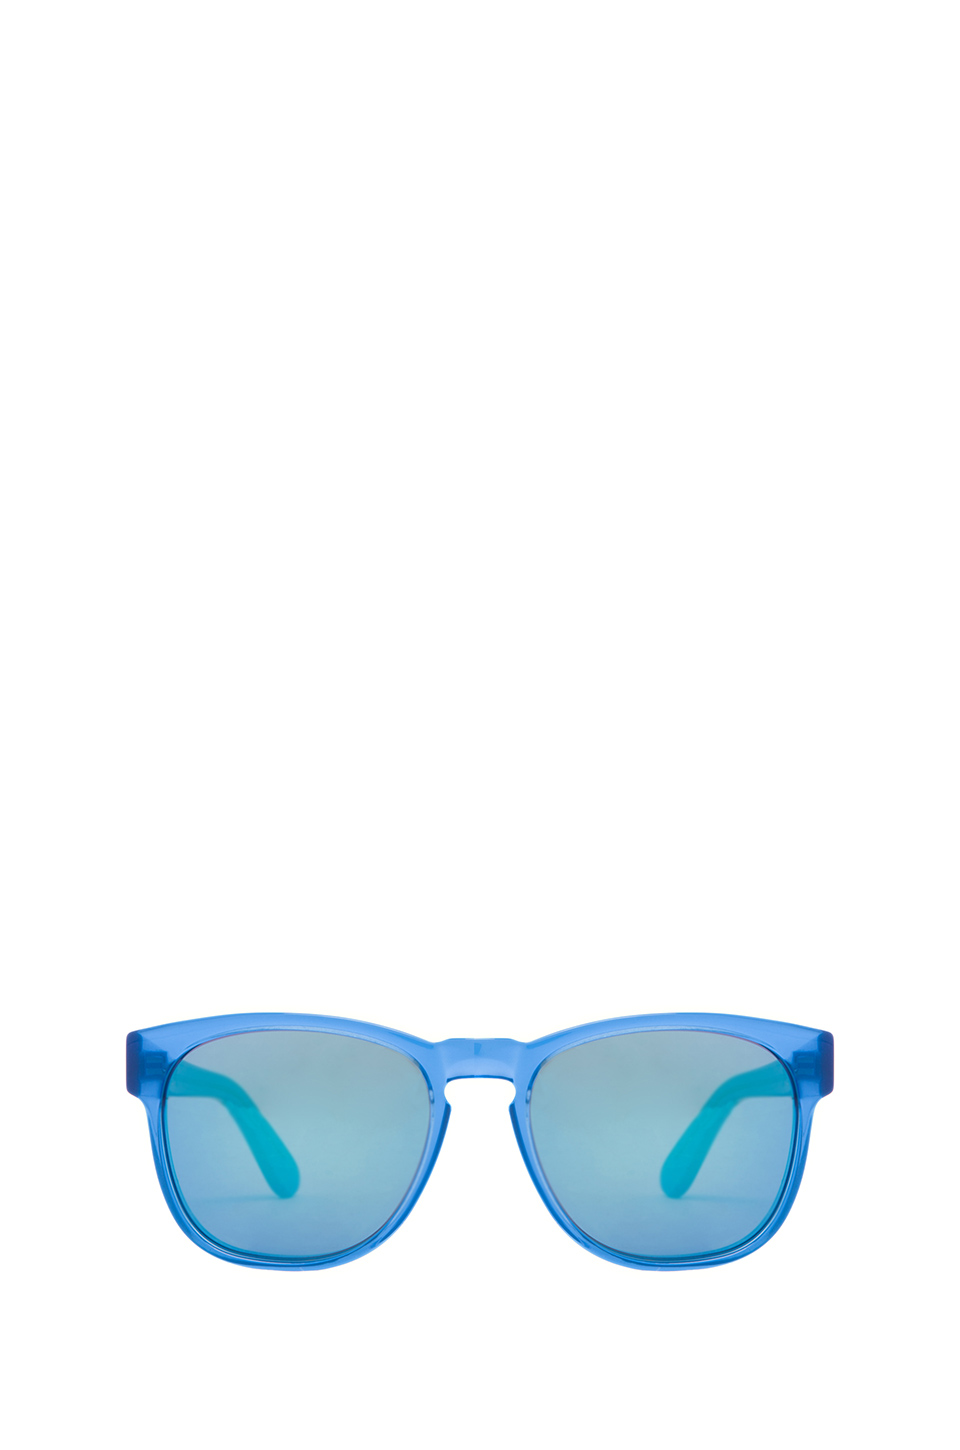 Wildfox Couture Classic Fox 2 Sunglasses in Blue | REVOLVE